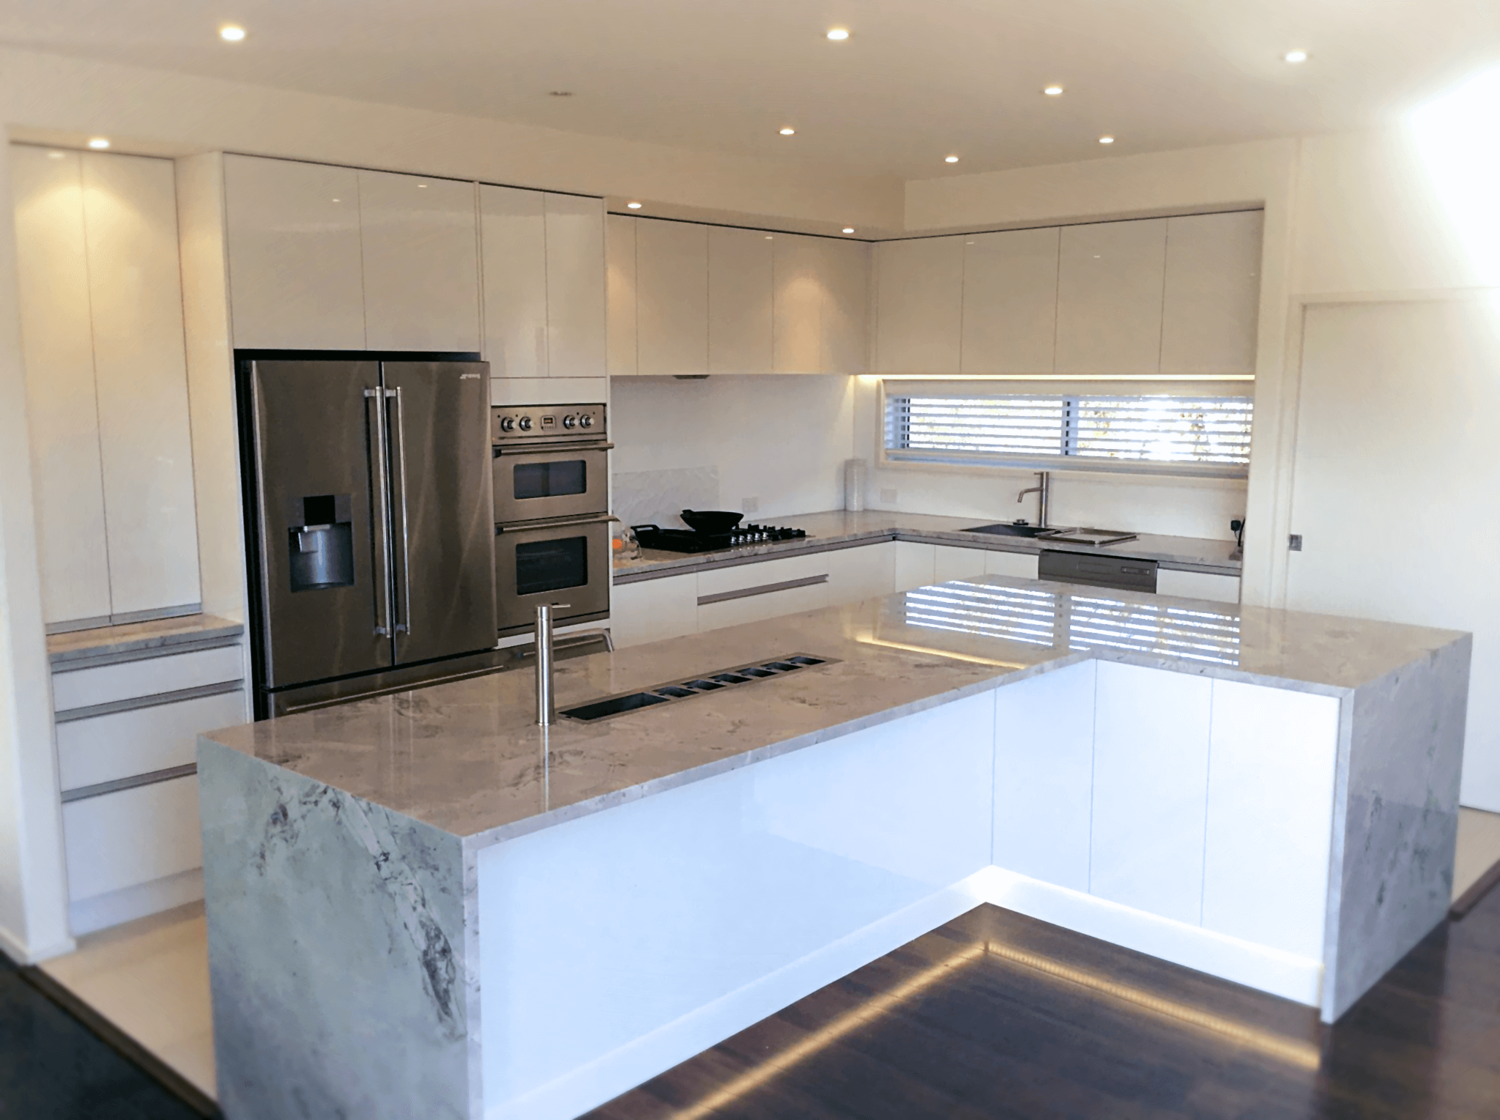 Bella Kitchens and Cabinetry – Silverdale, Auckland, New Zealand